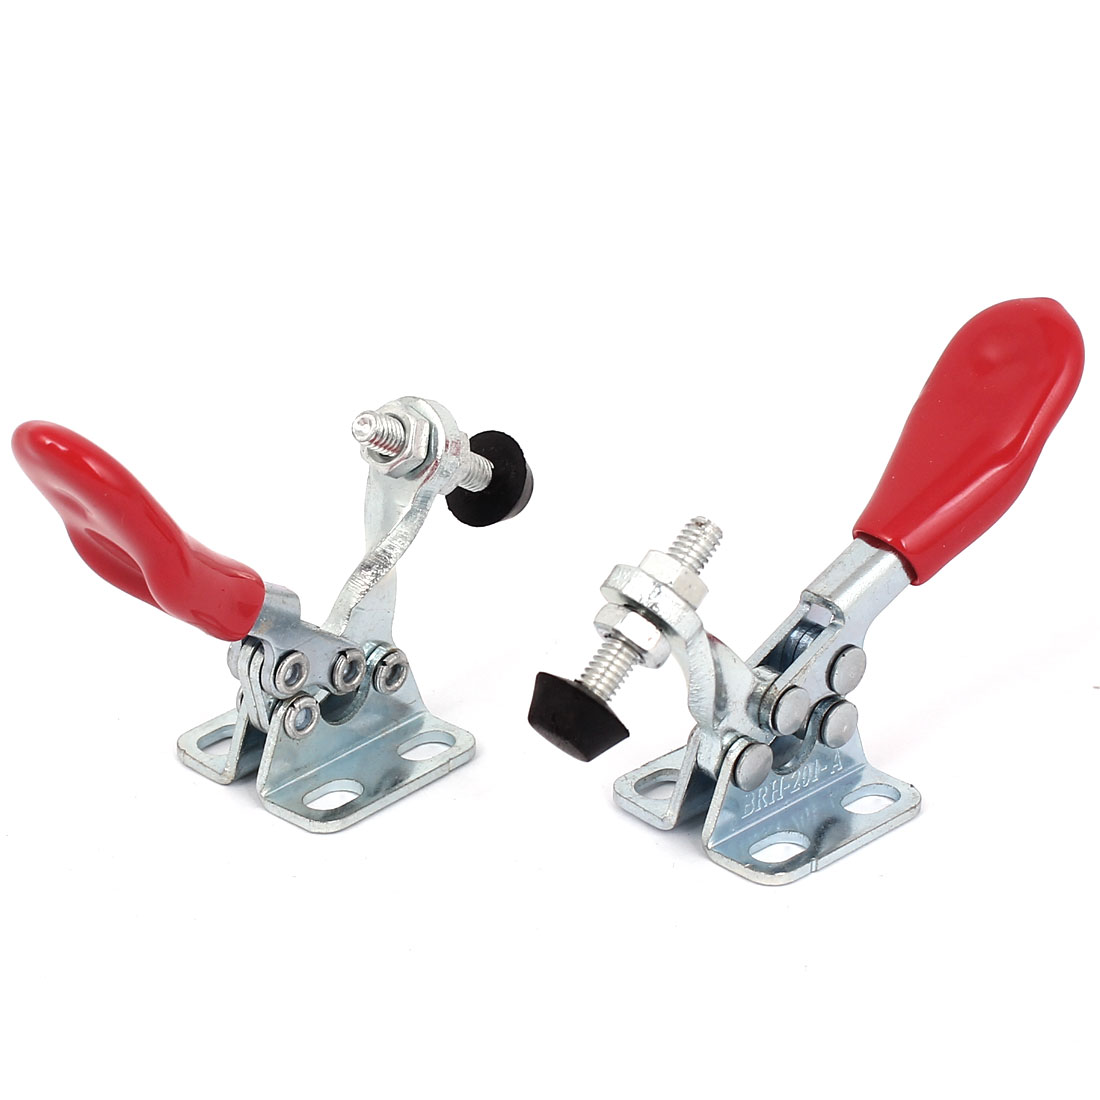 BRH-201-A Quick Hold 27Kg 60 Lbs Bent Horizontal Type Toggle Clamp 2pcs